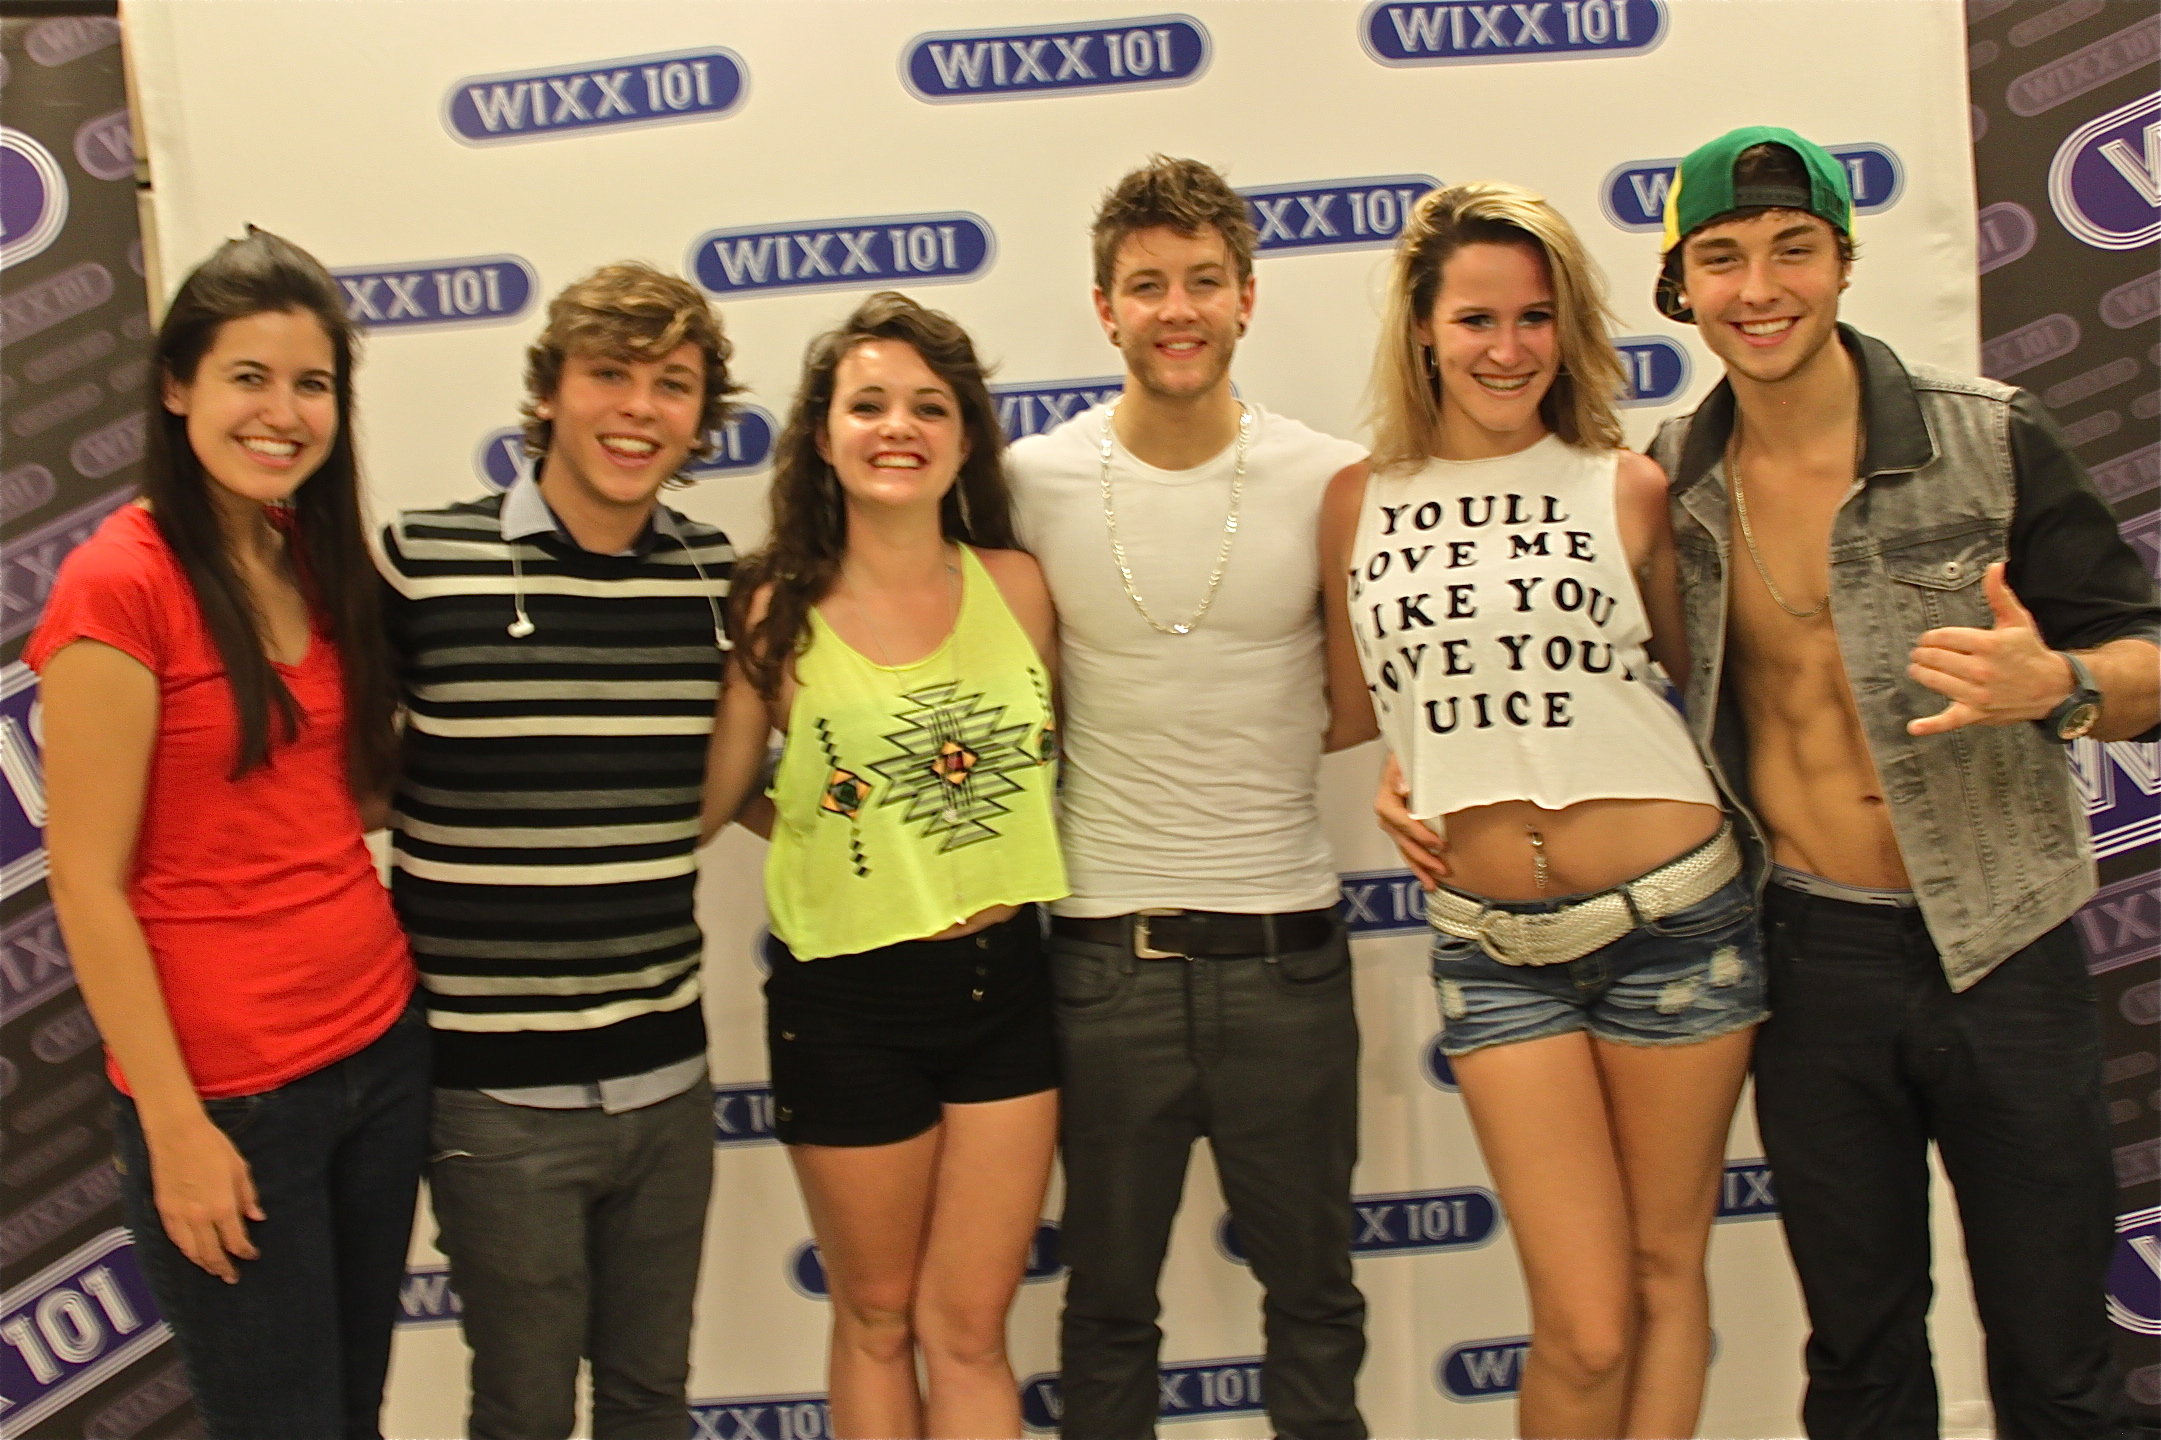 emblem3 meet and greet pictures with chris